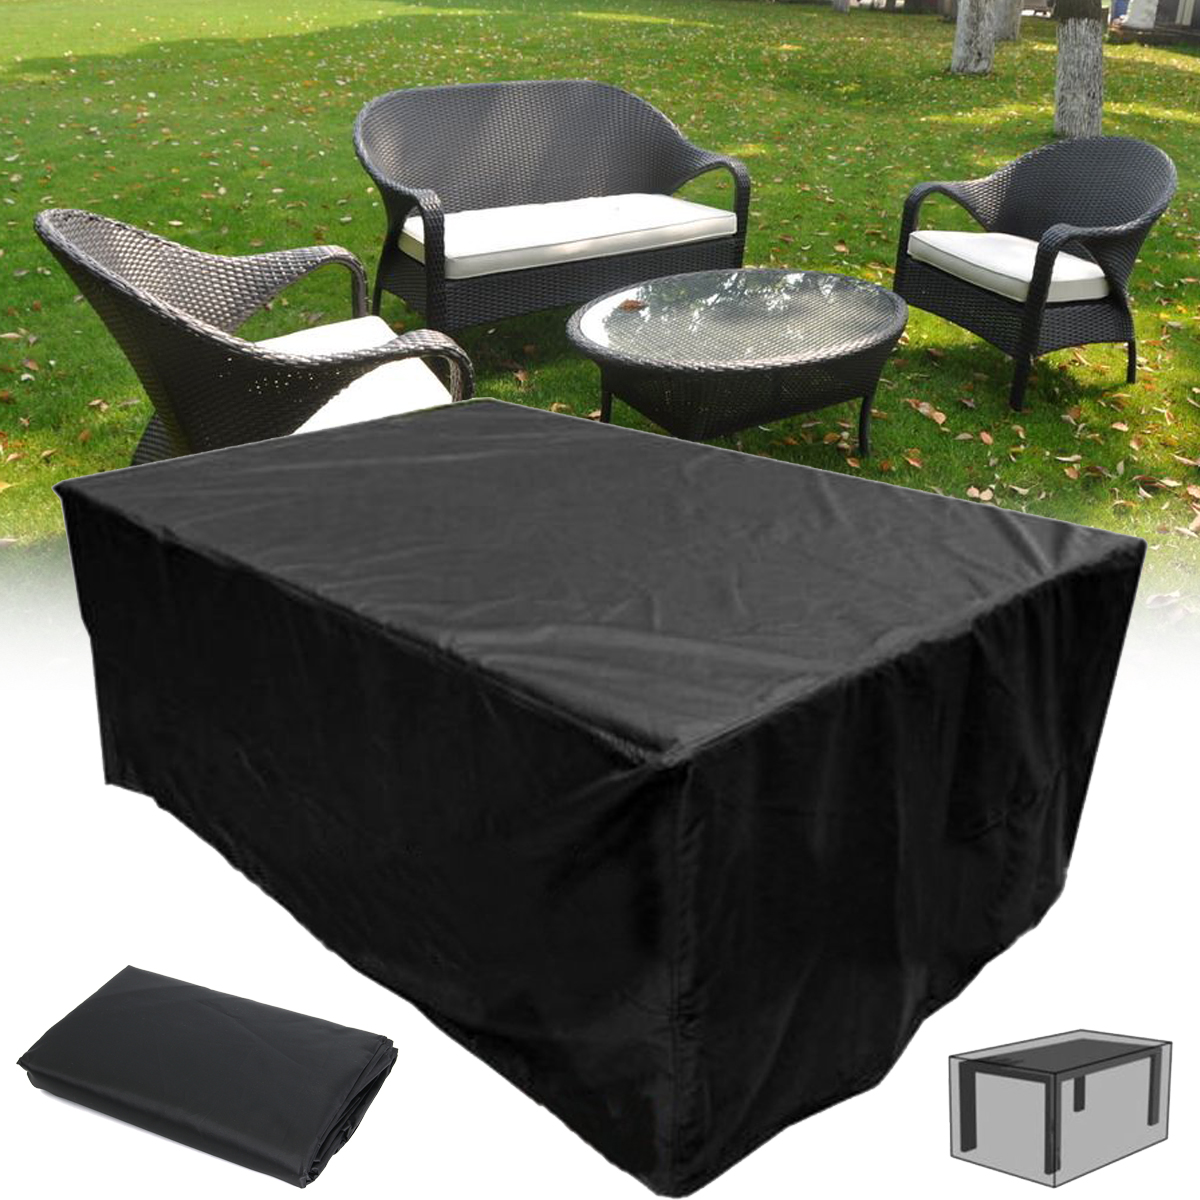 83 x43 x28 waterproof furniture cover rectangular patio table cover for moving protection and long term storage walmart com